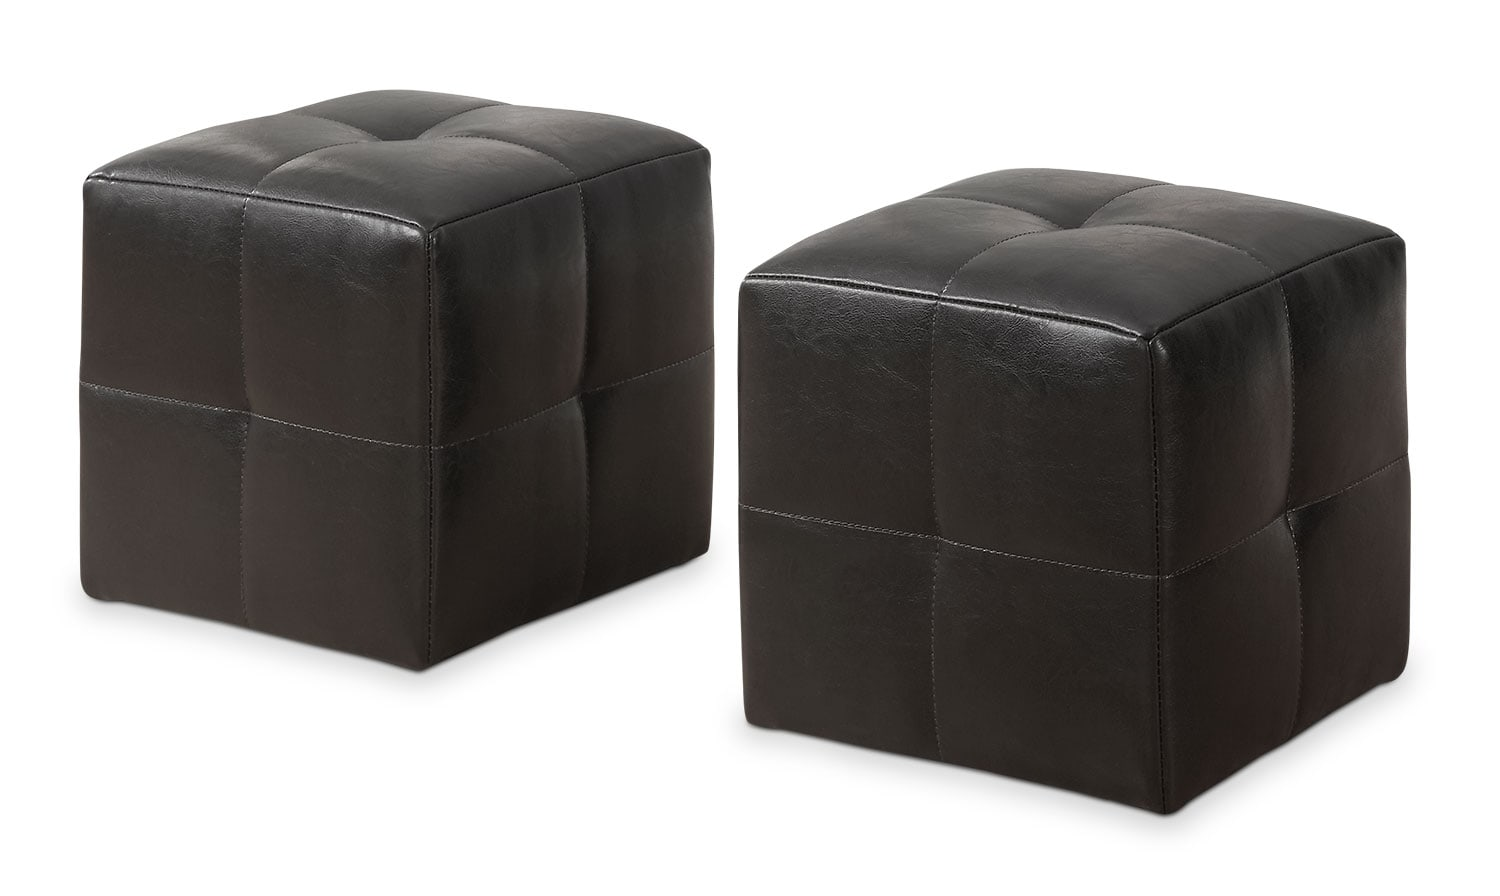 Kids Furniture - Monarch Children's 2-Piece Ottoman Set – Dark Brown